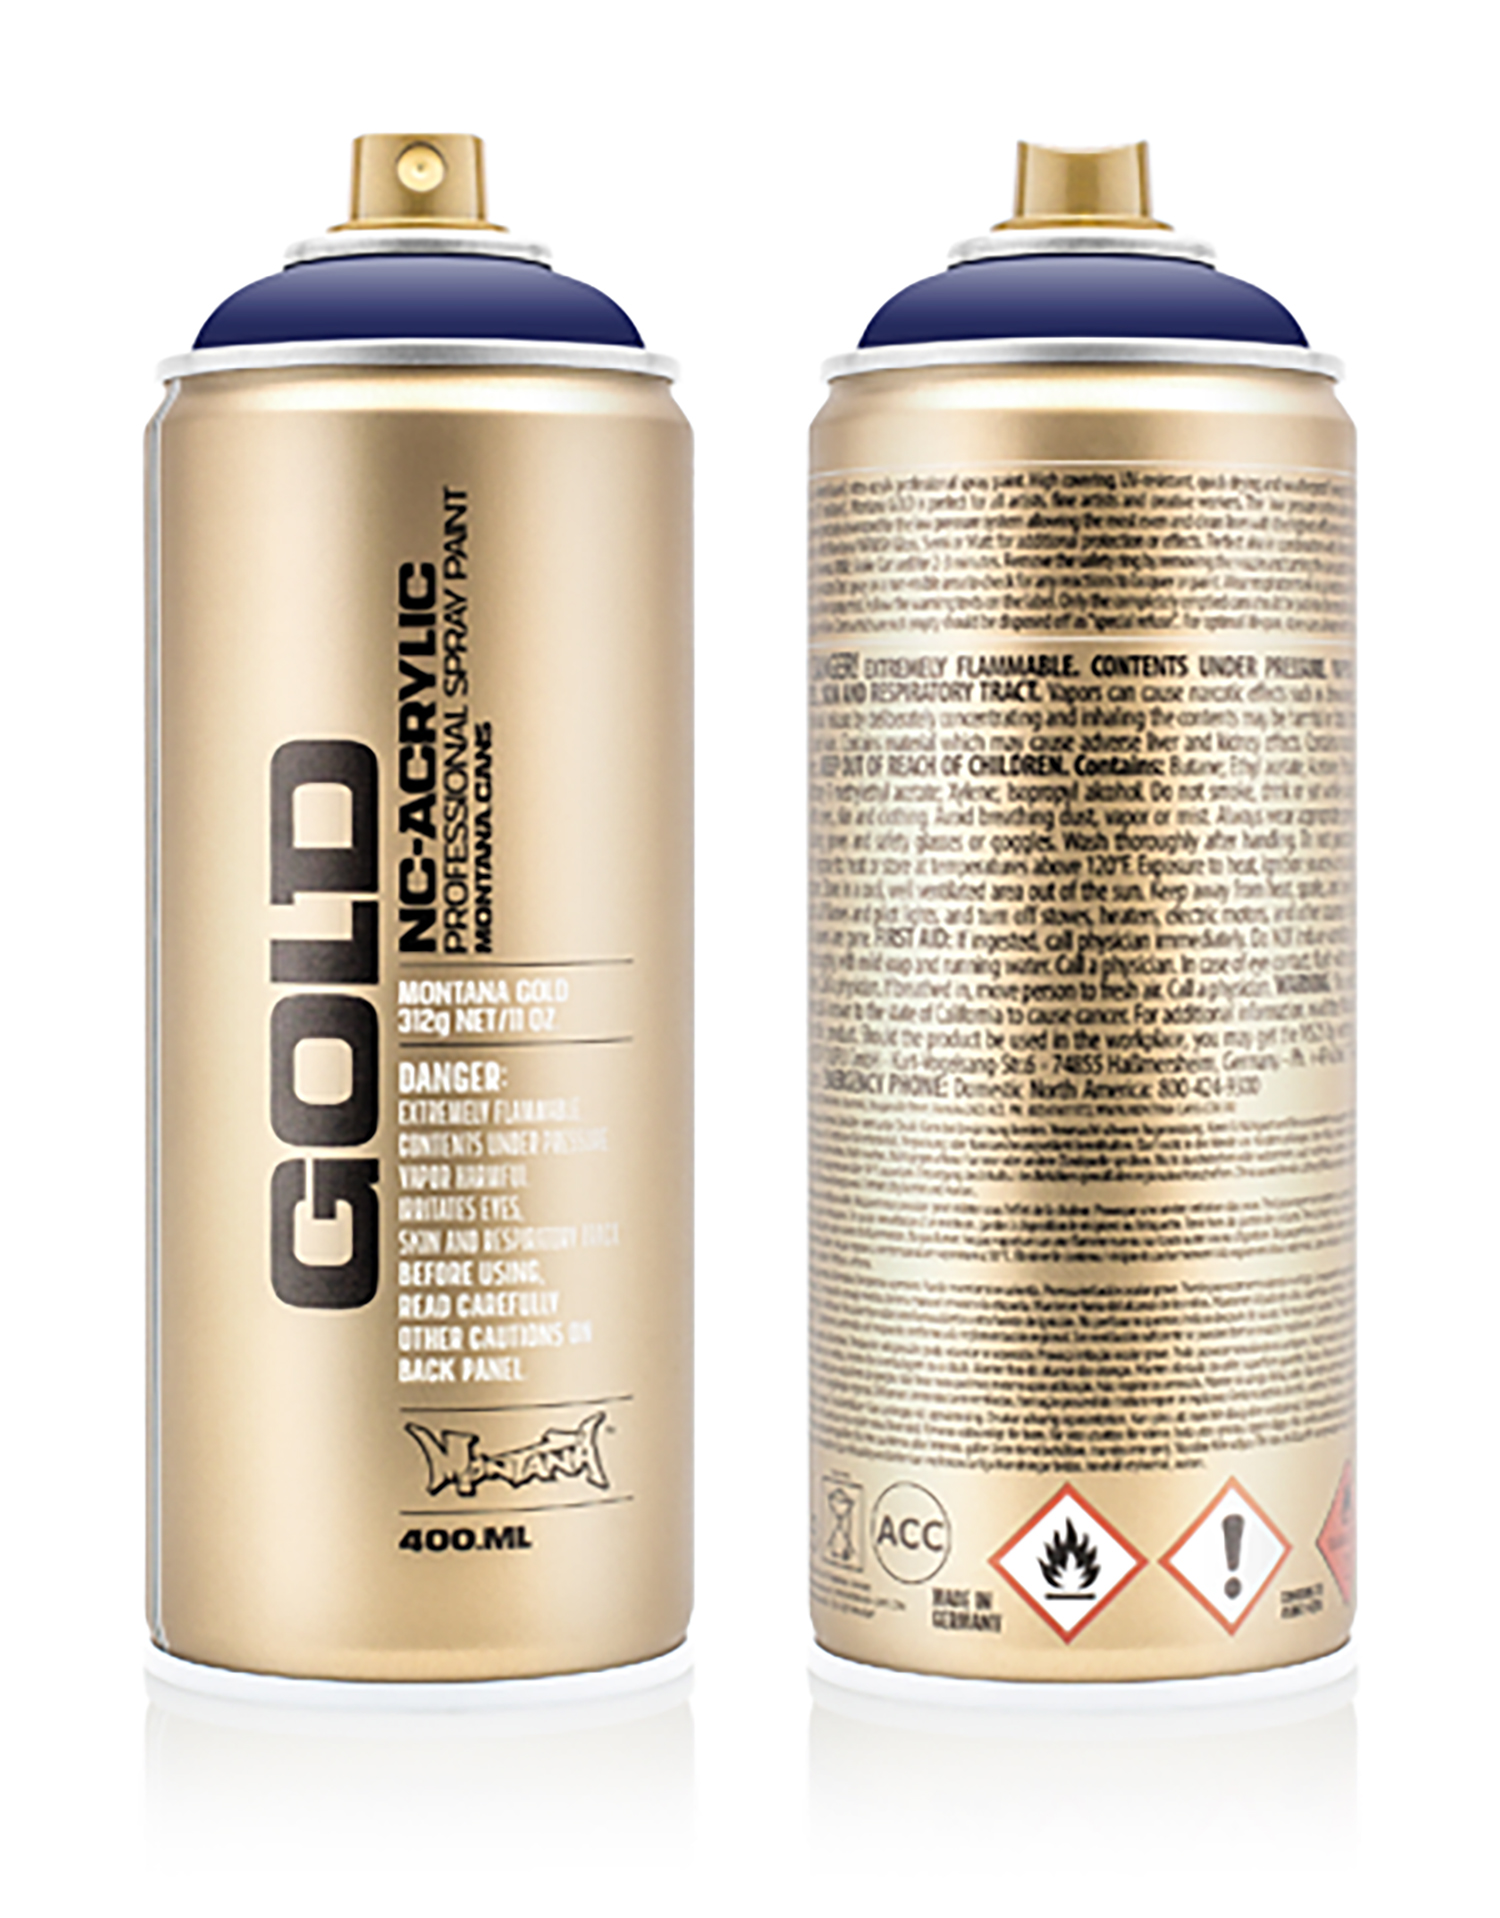 MONTANA-GOLD-SPRAY-400ML-G-4170